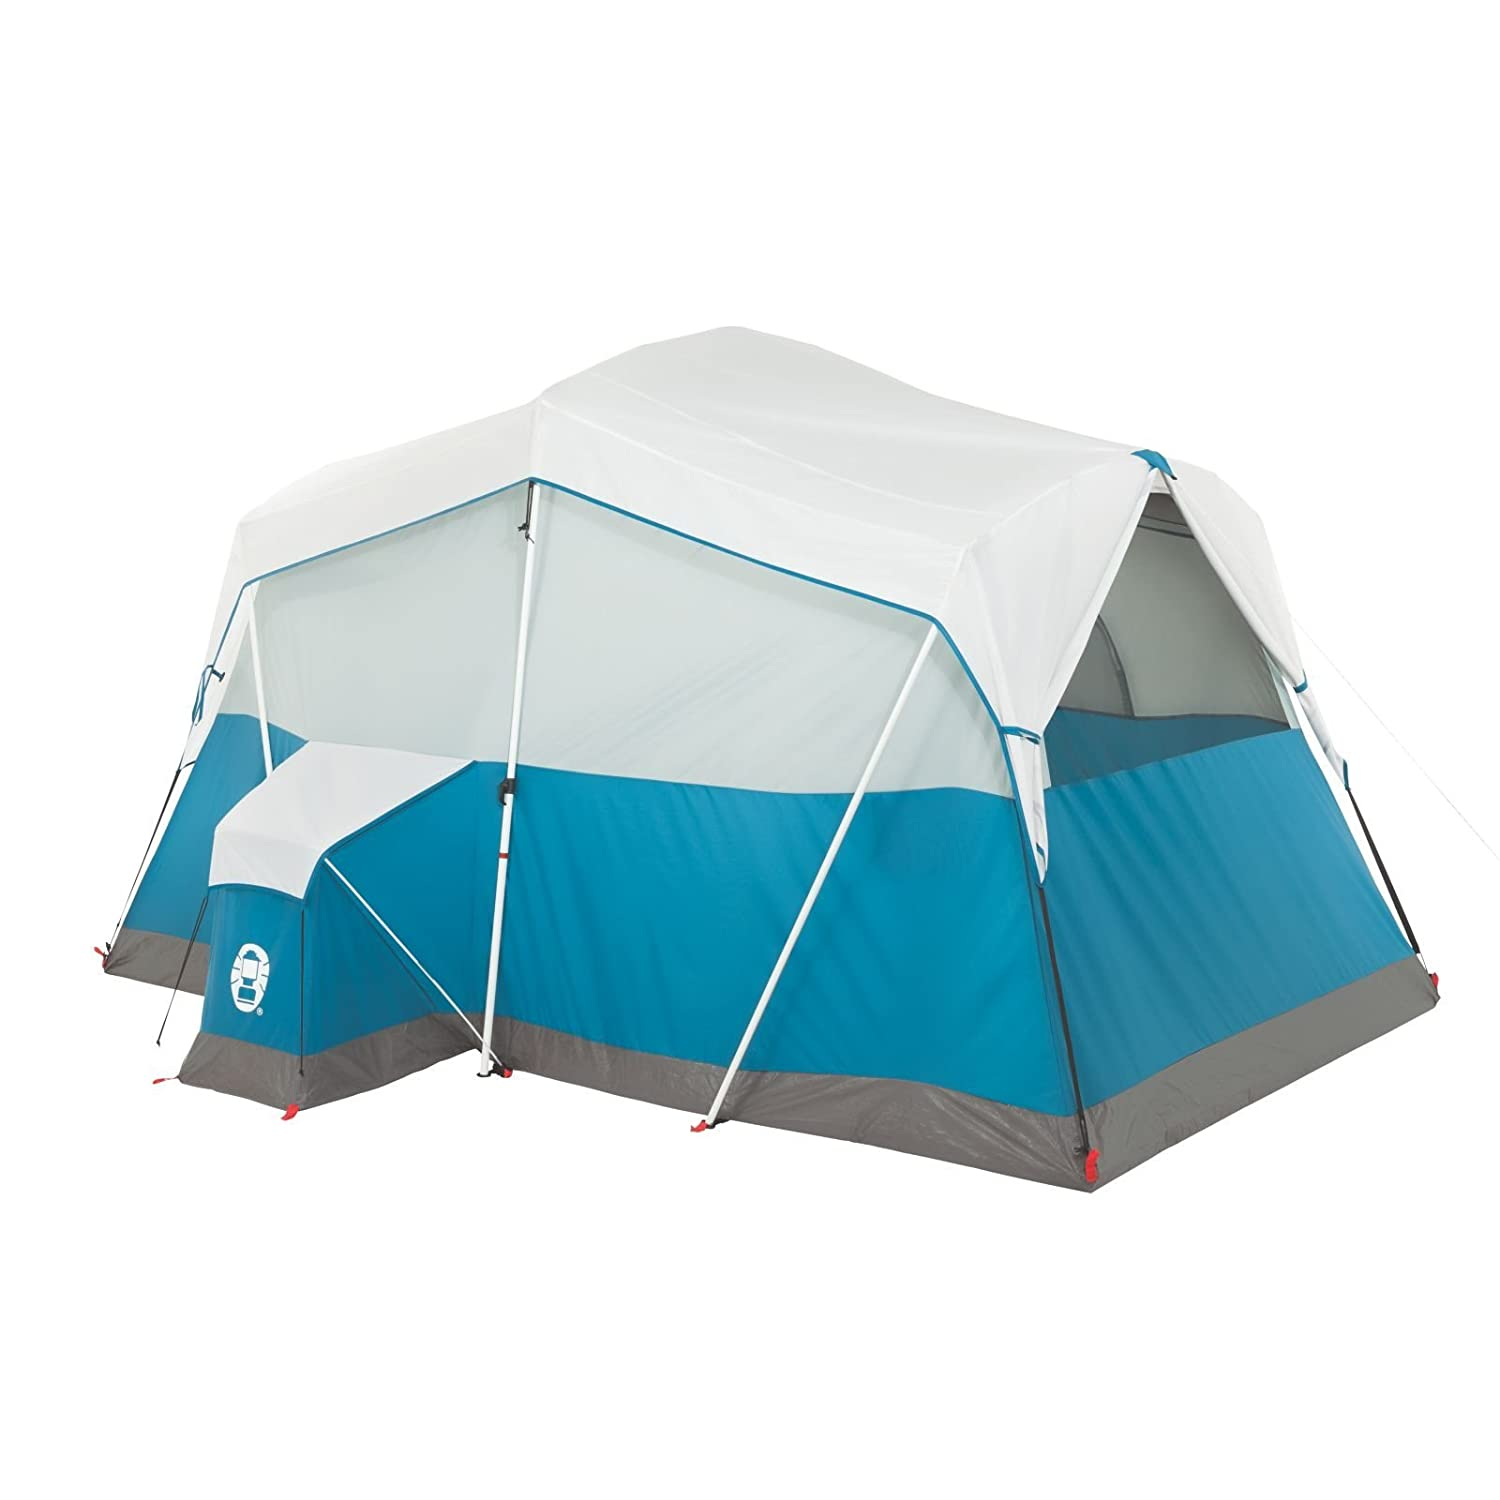 Amazon.com  Coleman Echo Lake 6 Person Fast Pitch Cabin with Cabinet  Sports u0026 Outdoors  sc 1 st  Amazon.com & Amazon.com : Coleman Echo Lake 6 Person Fast Pitch Cabin with ...